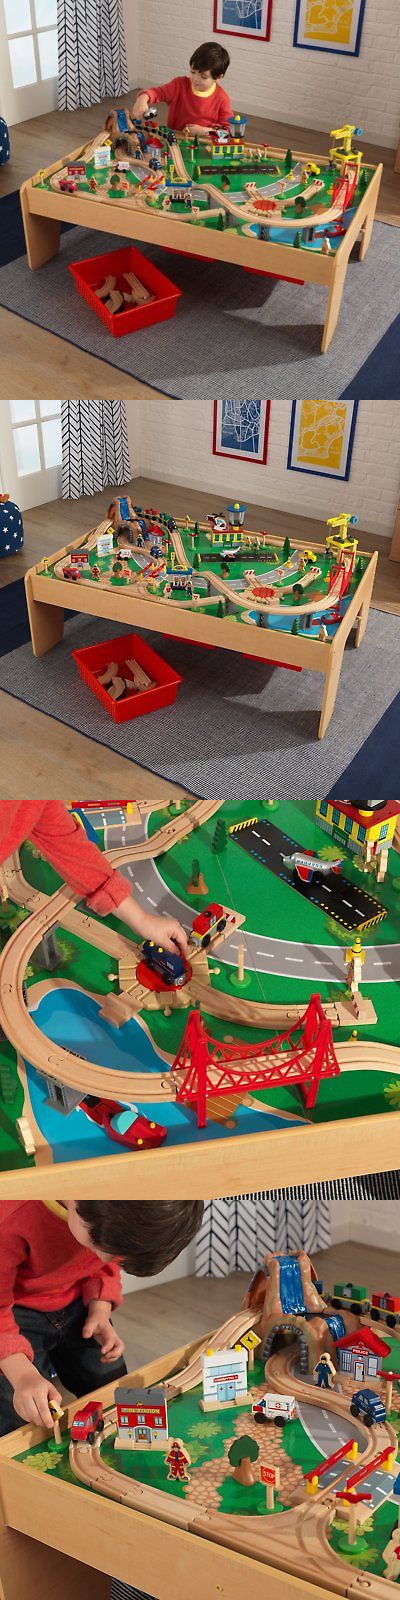 Wooden And Handcrafted Toys 1197: Kidkraft Waterfall Mountain Train Table  And Train Set   17850